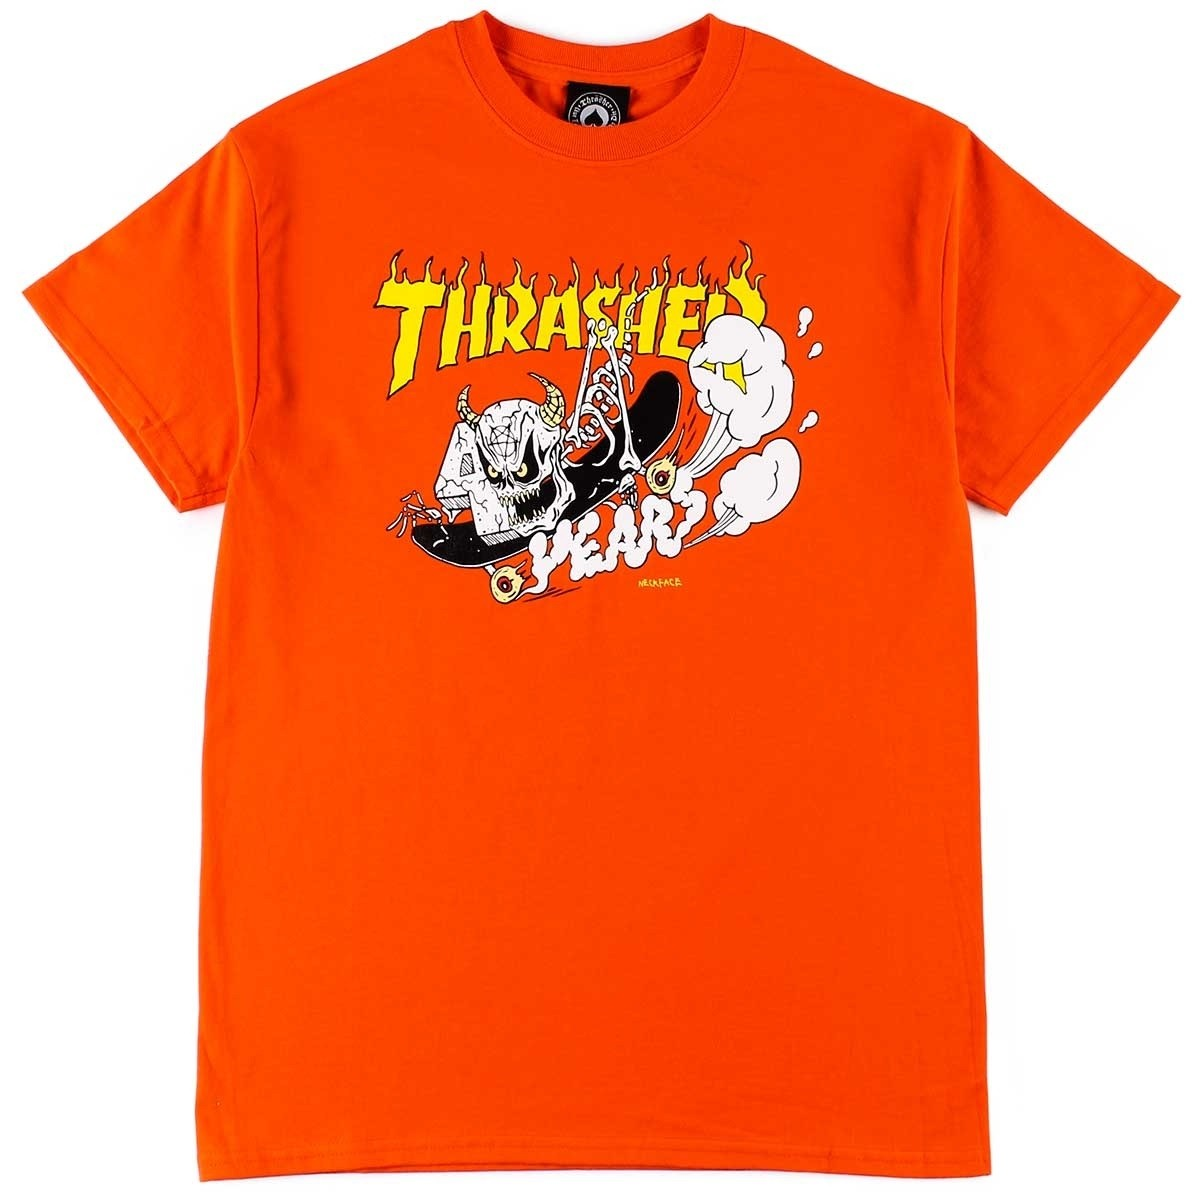 Thrasher 40 Years Neckface Tee Orange